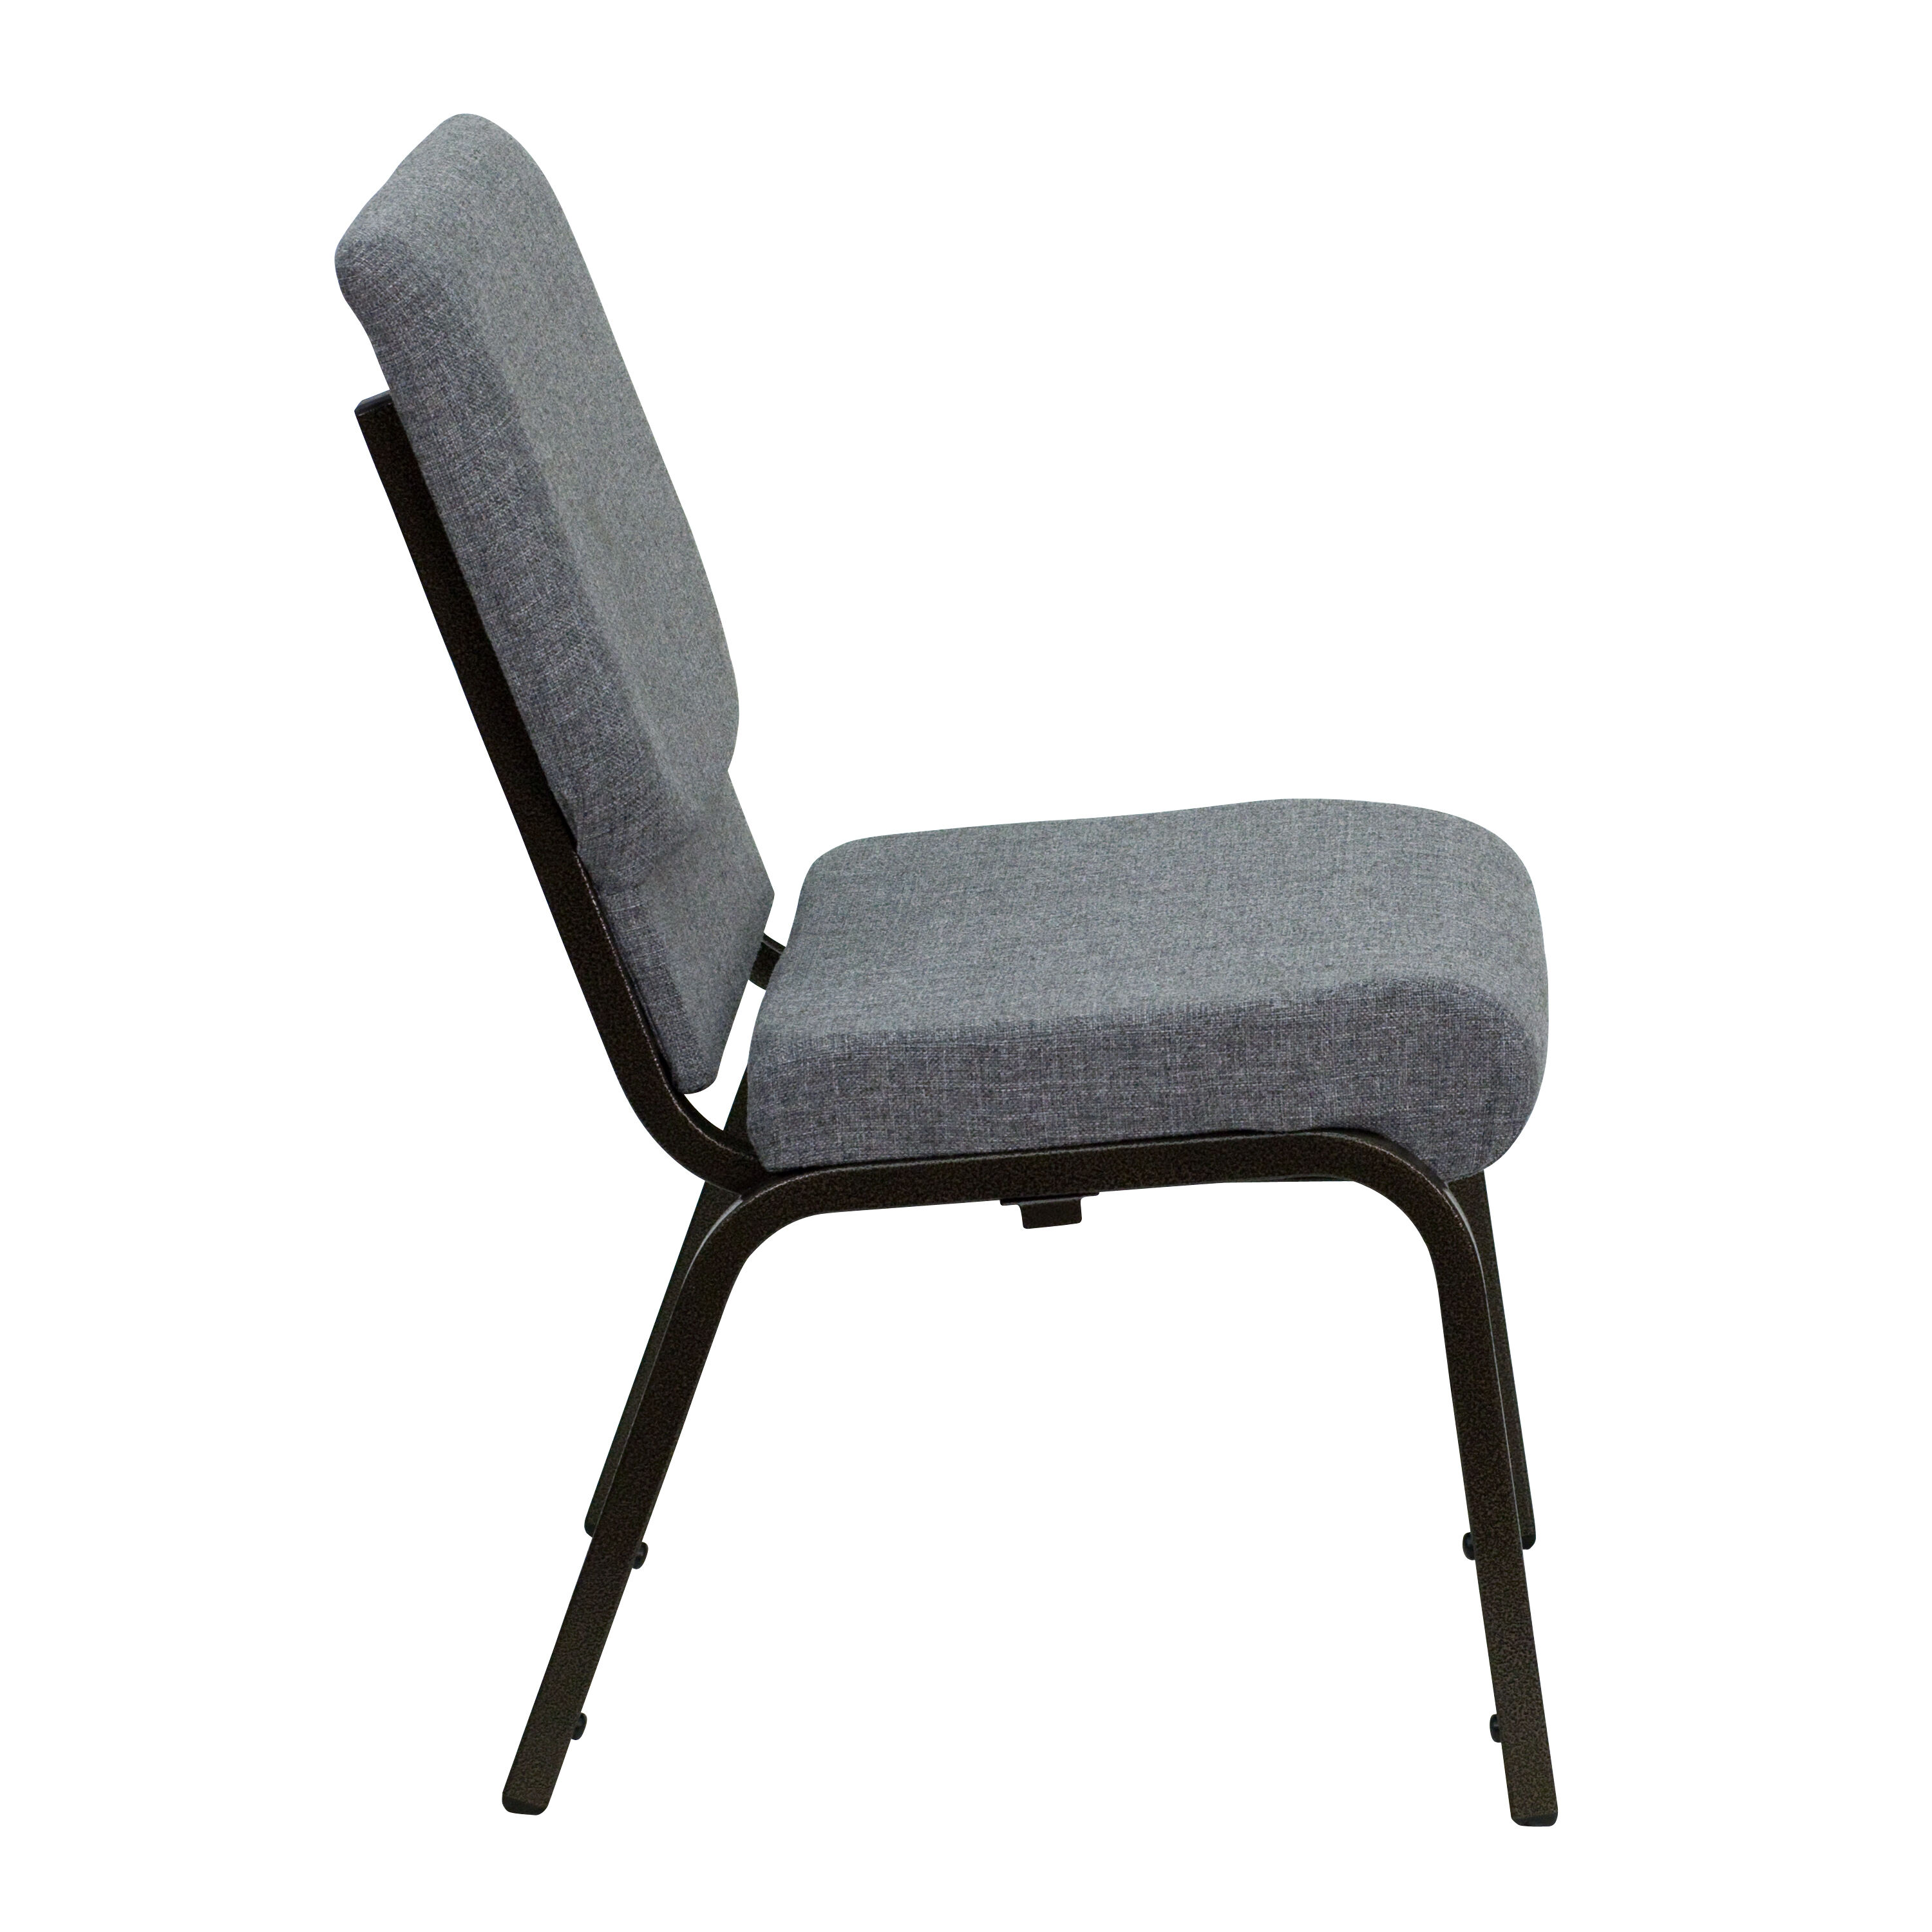 HERCULES Series 185W Stacking Church Chair in Gray